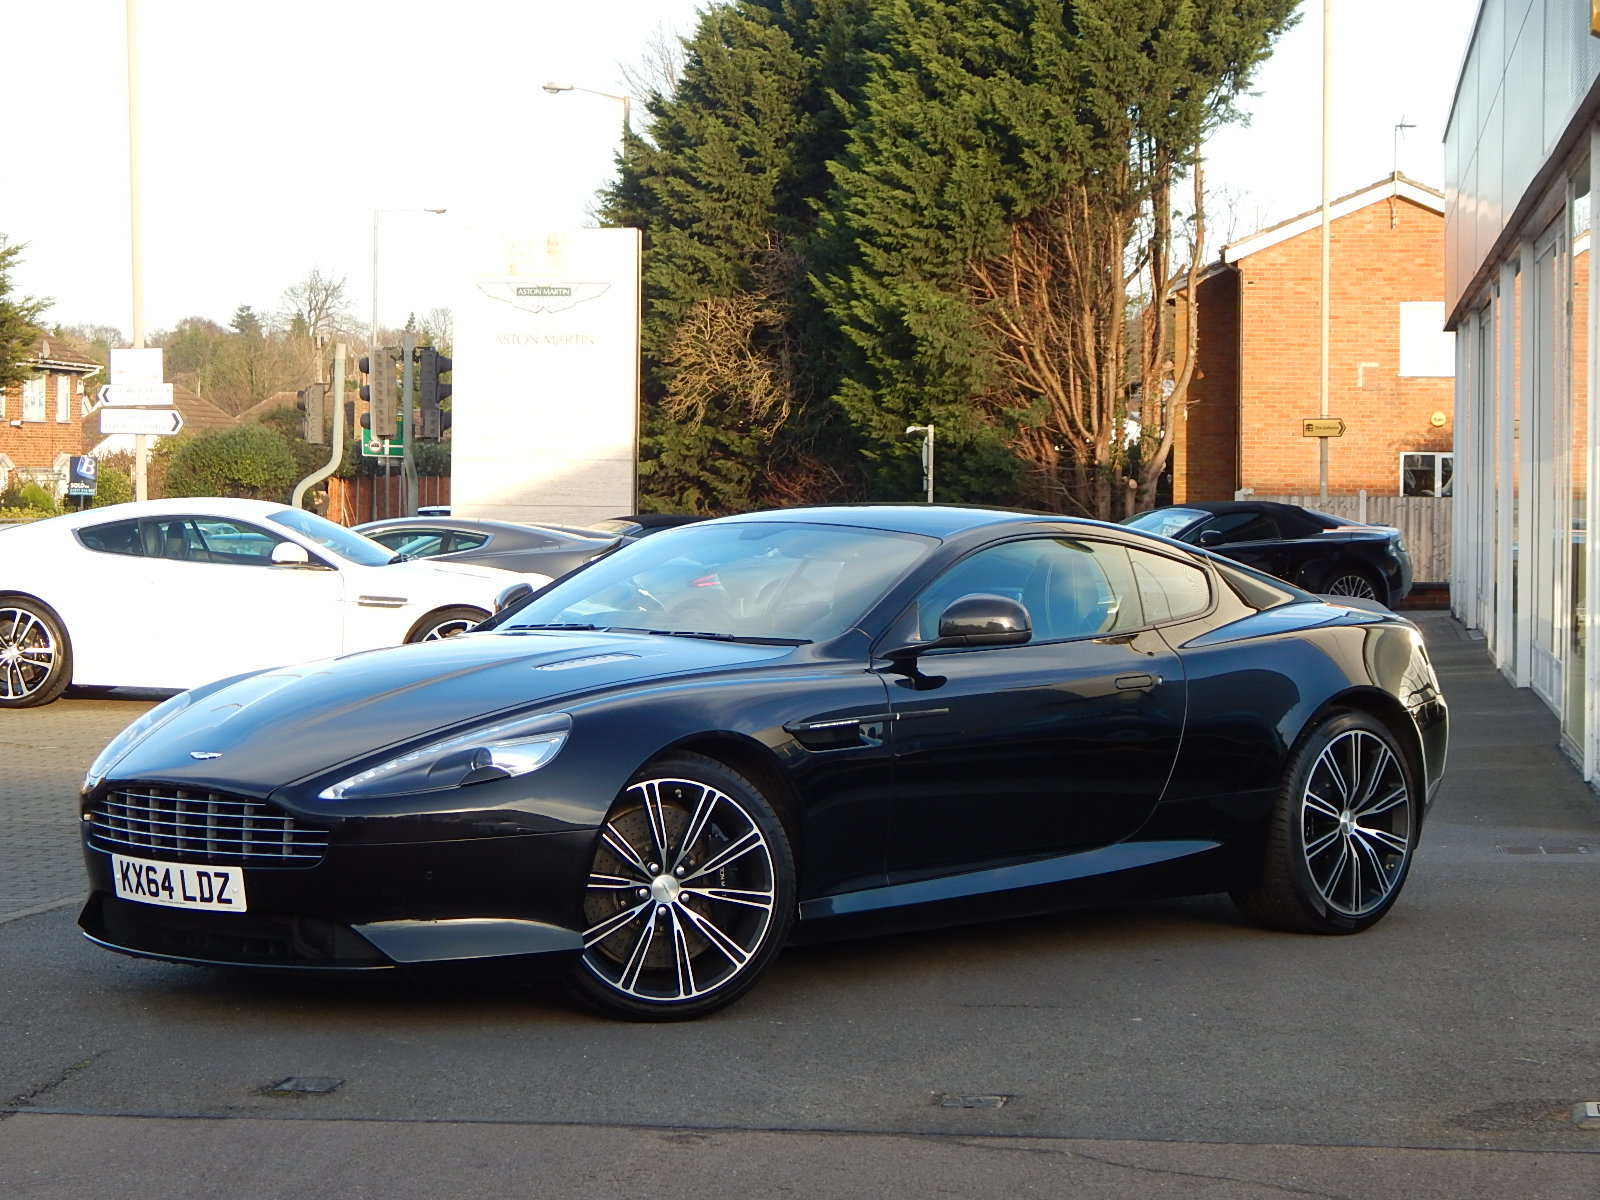 Aston Martin DB9 V12 2dr Touchtronic, Carbon Edition image 4